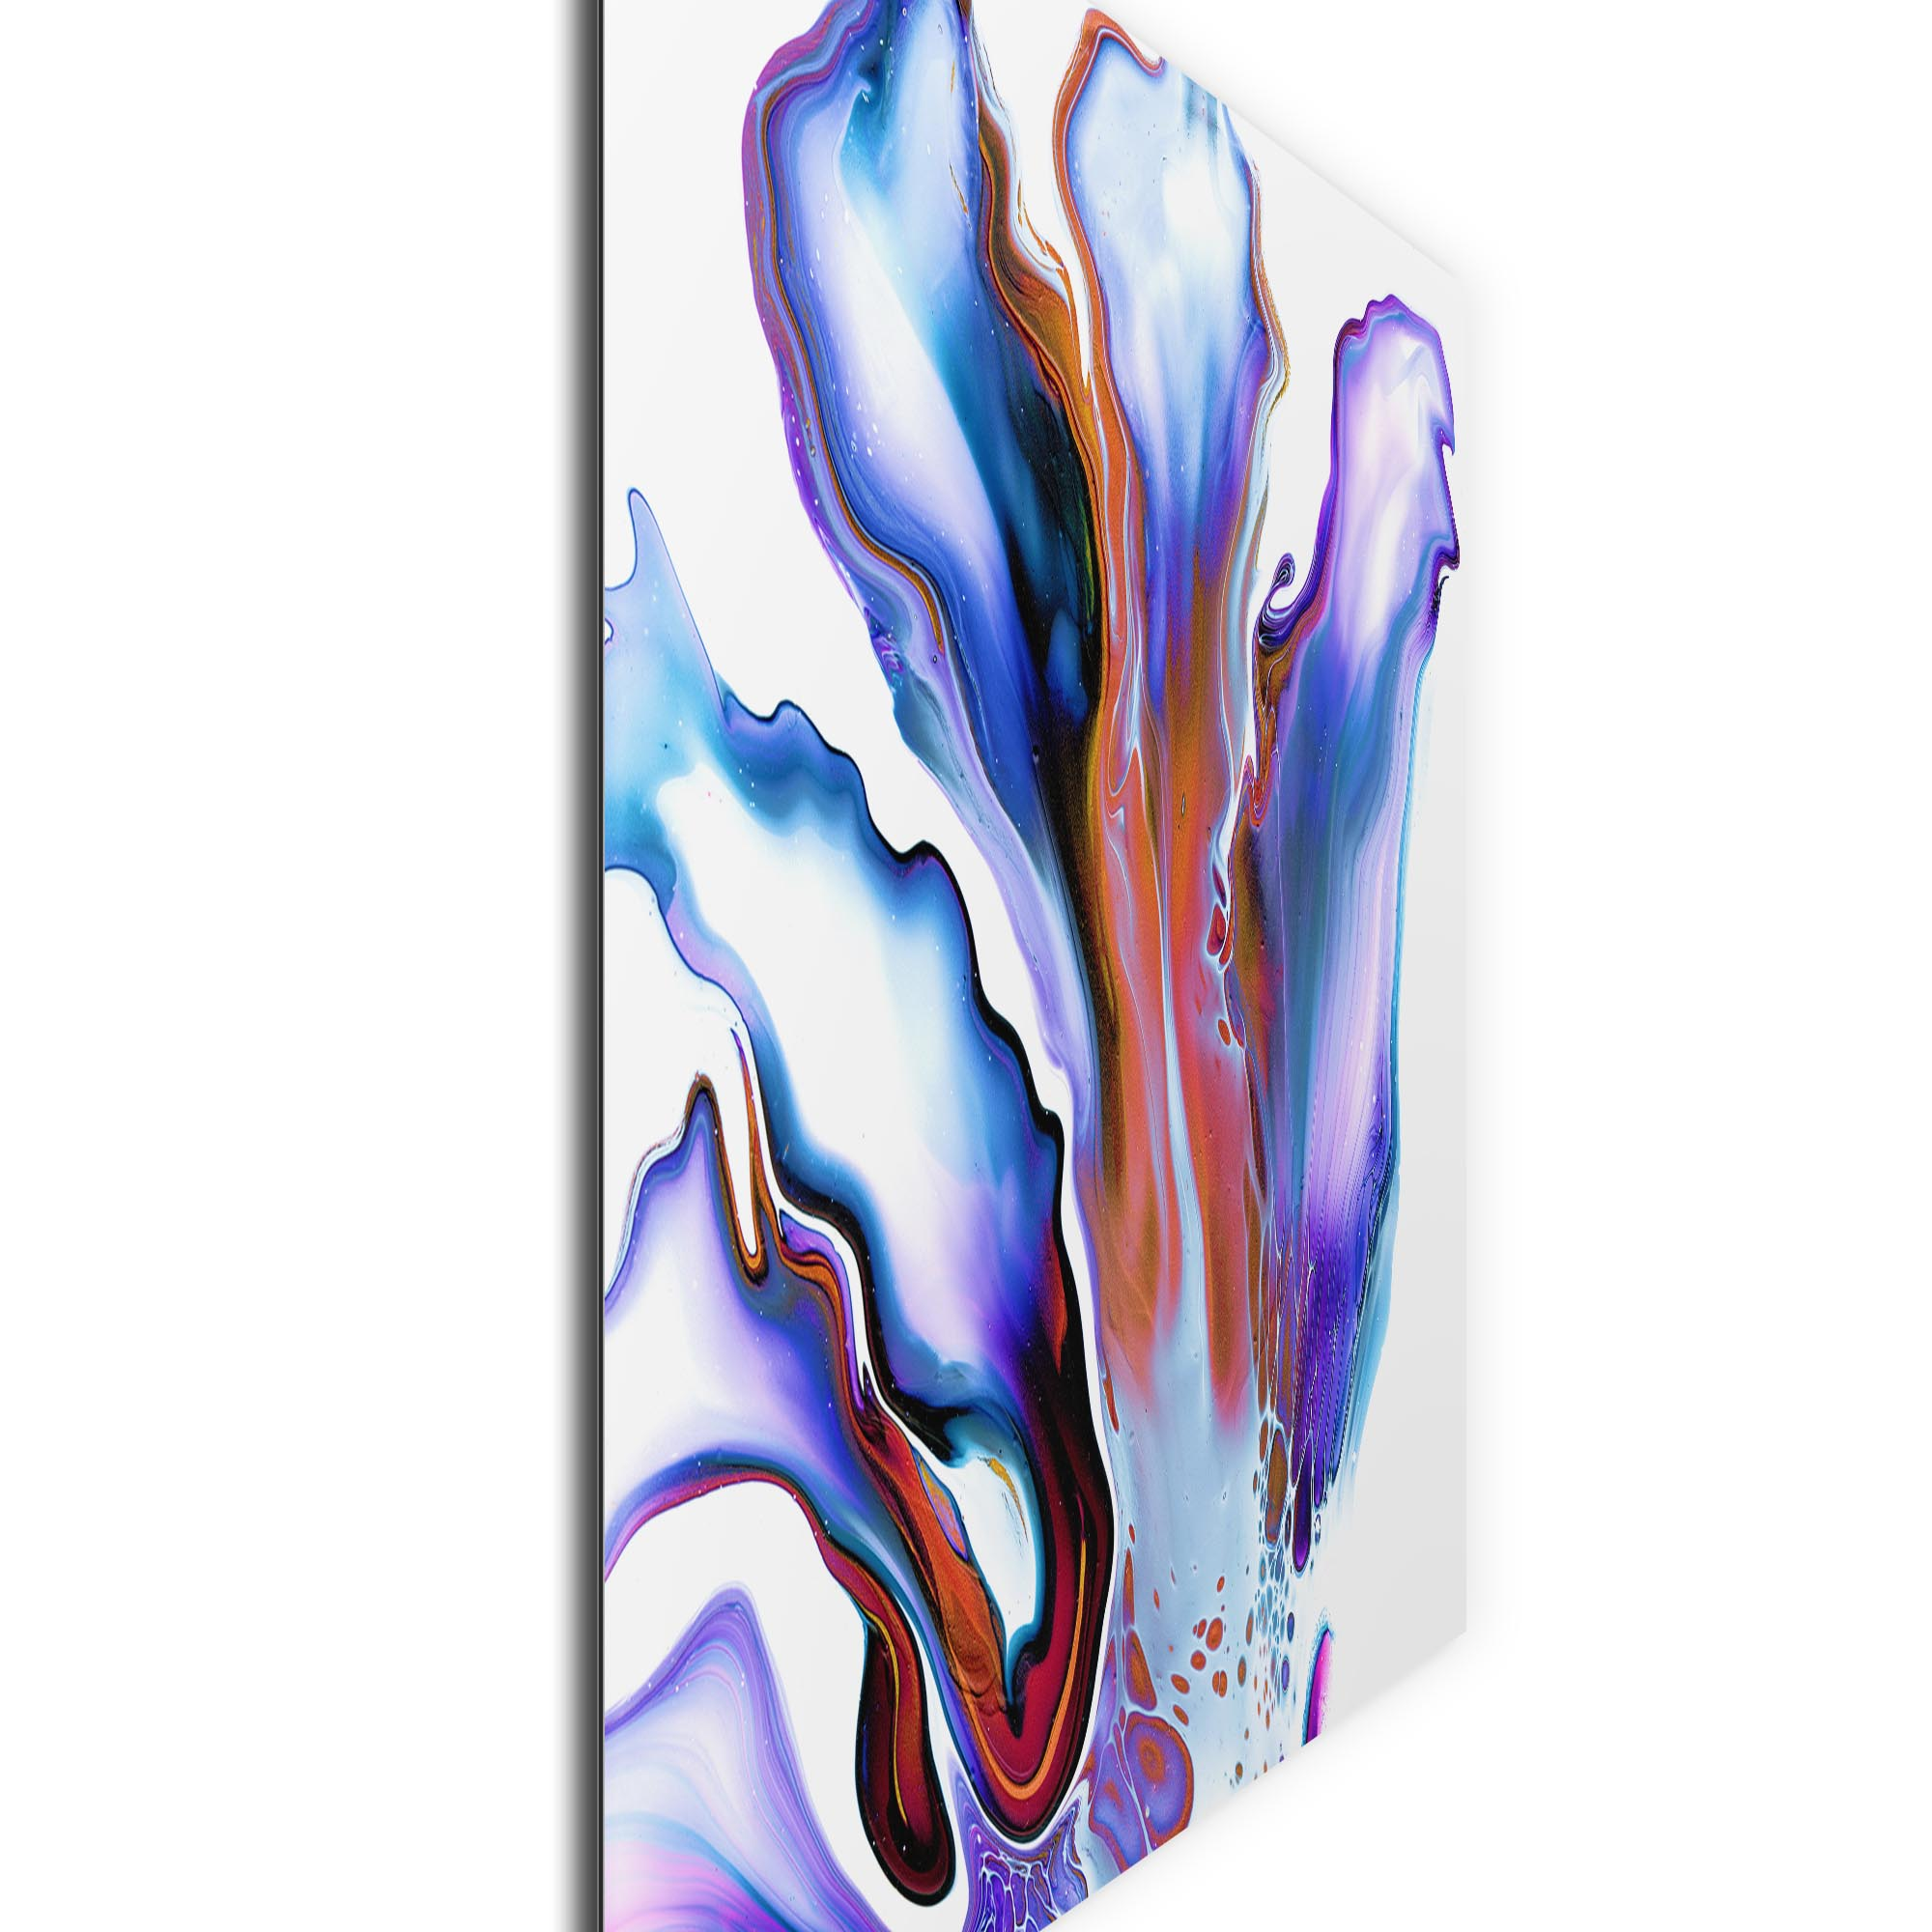 Blossom by Elana Reiter - Abstract Wall Art, Modern Home Decor (32in x 24in) - Image 2